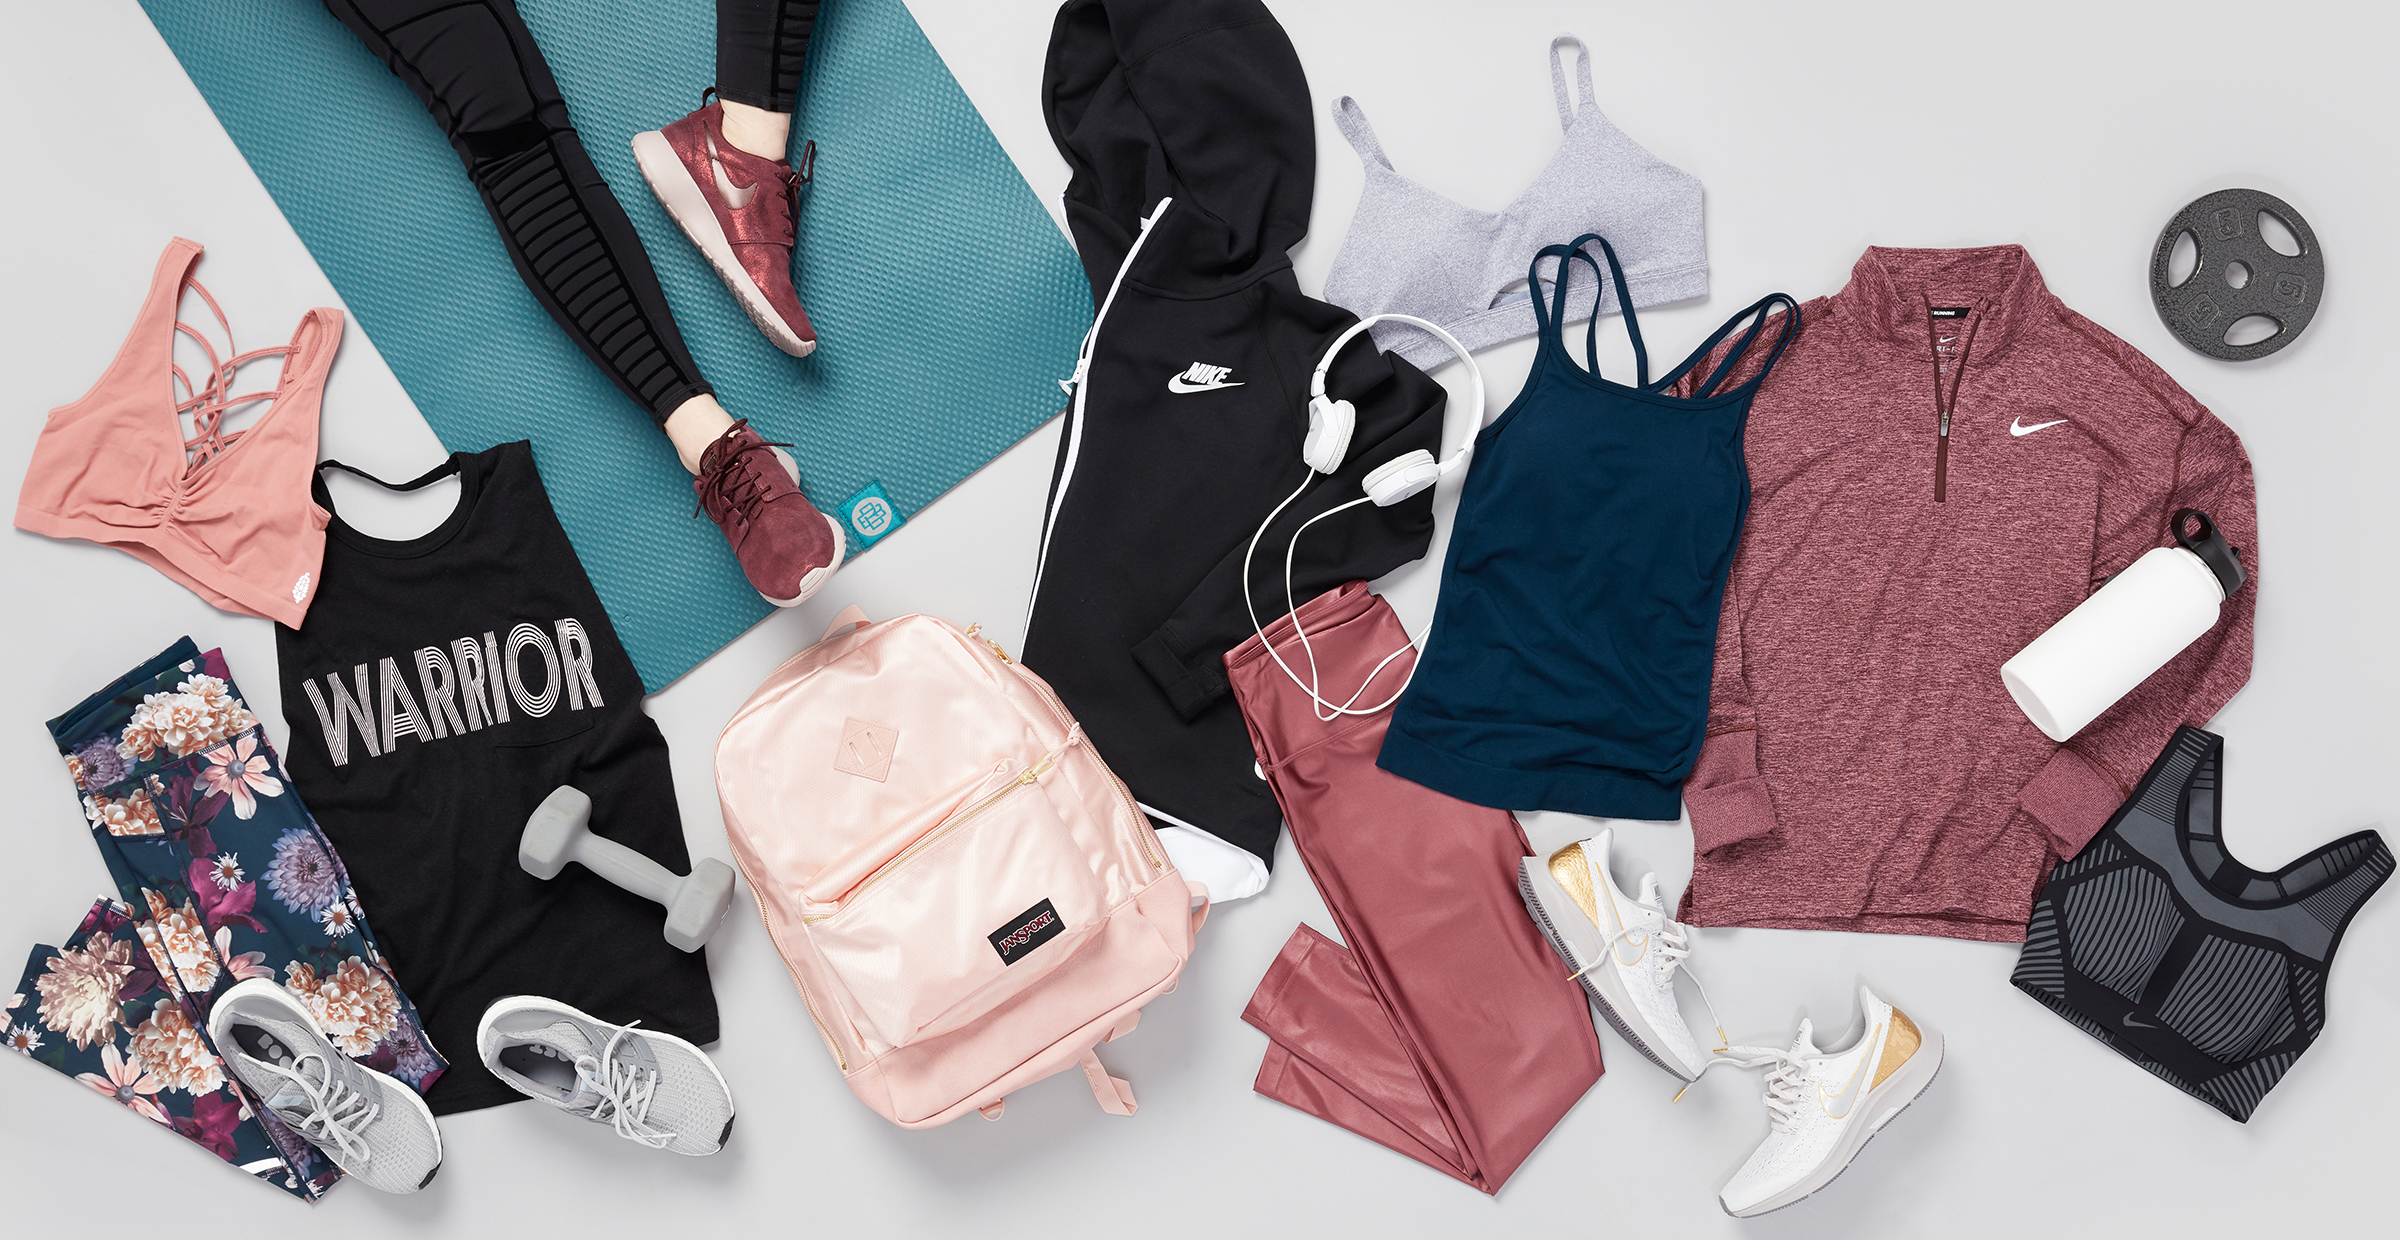 Outfits That Get You Excited for the Gym